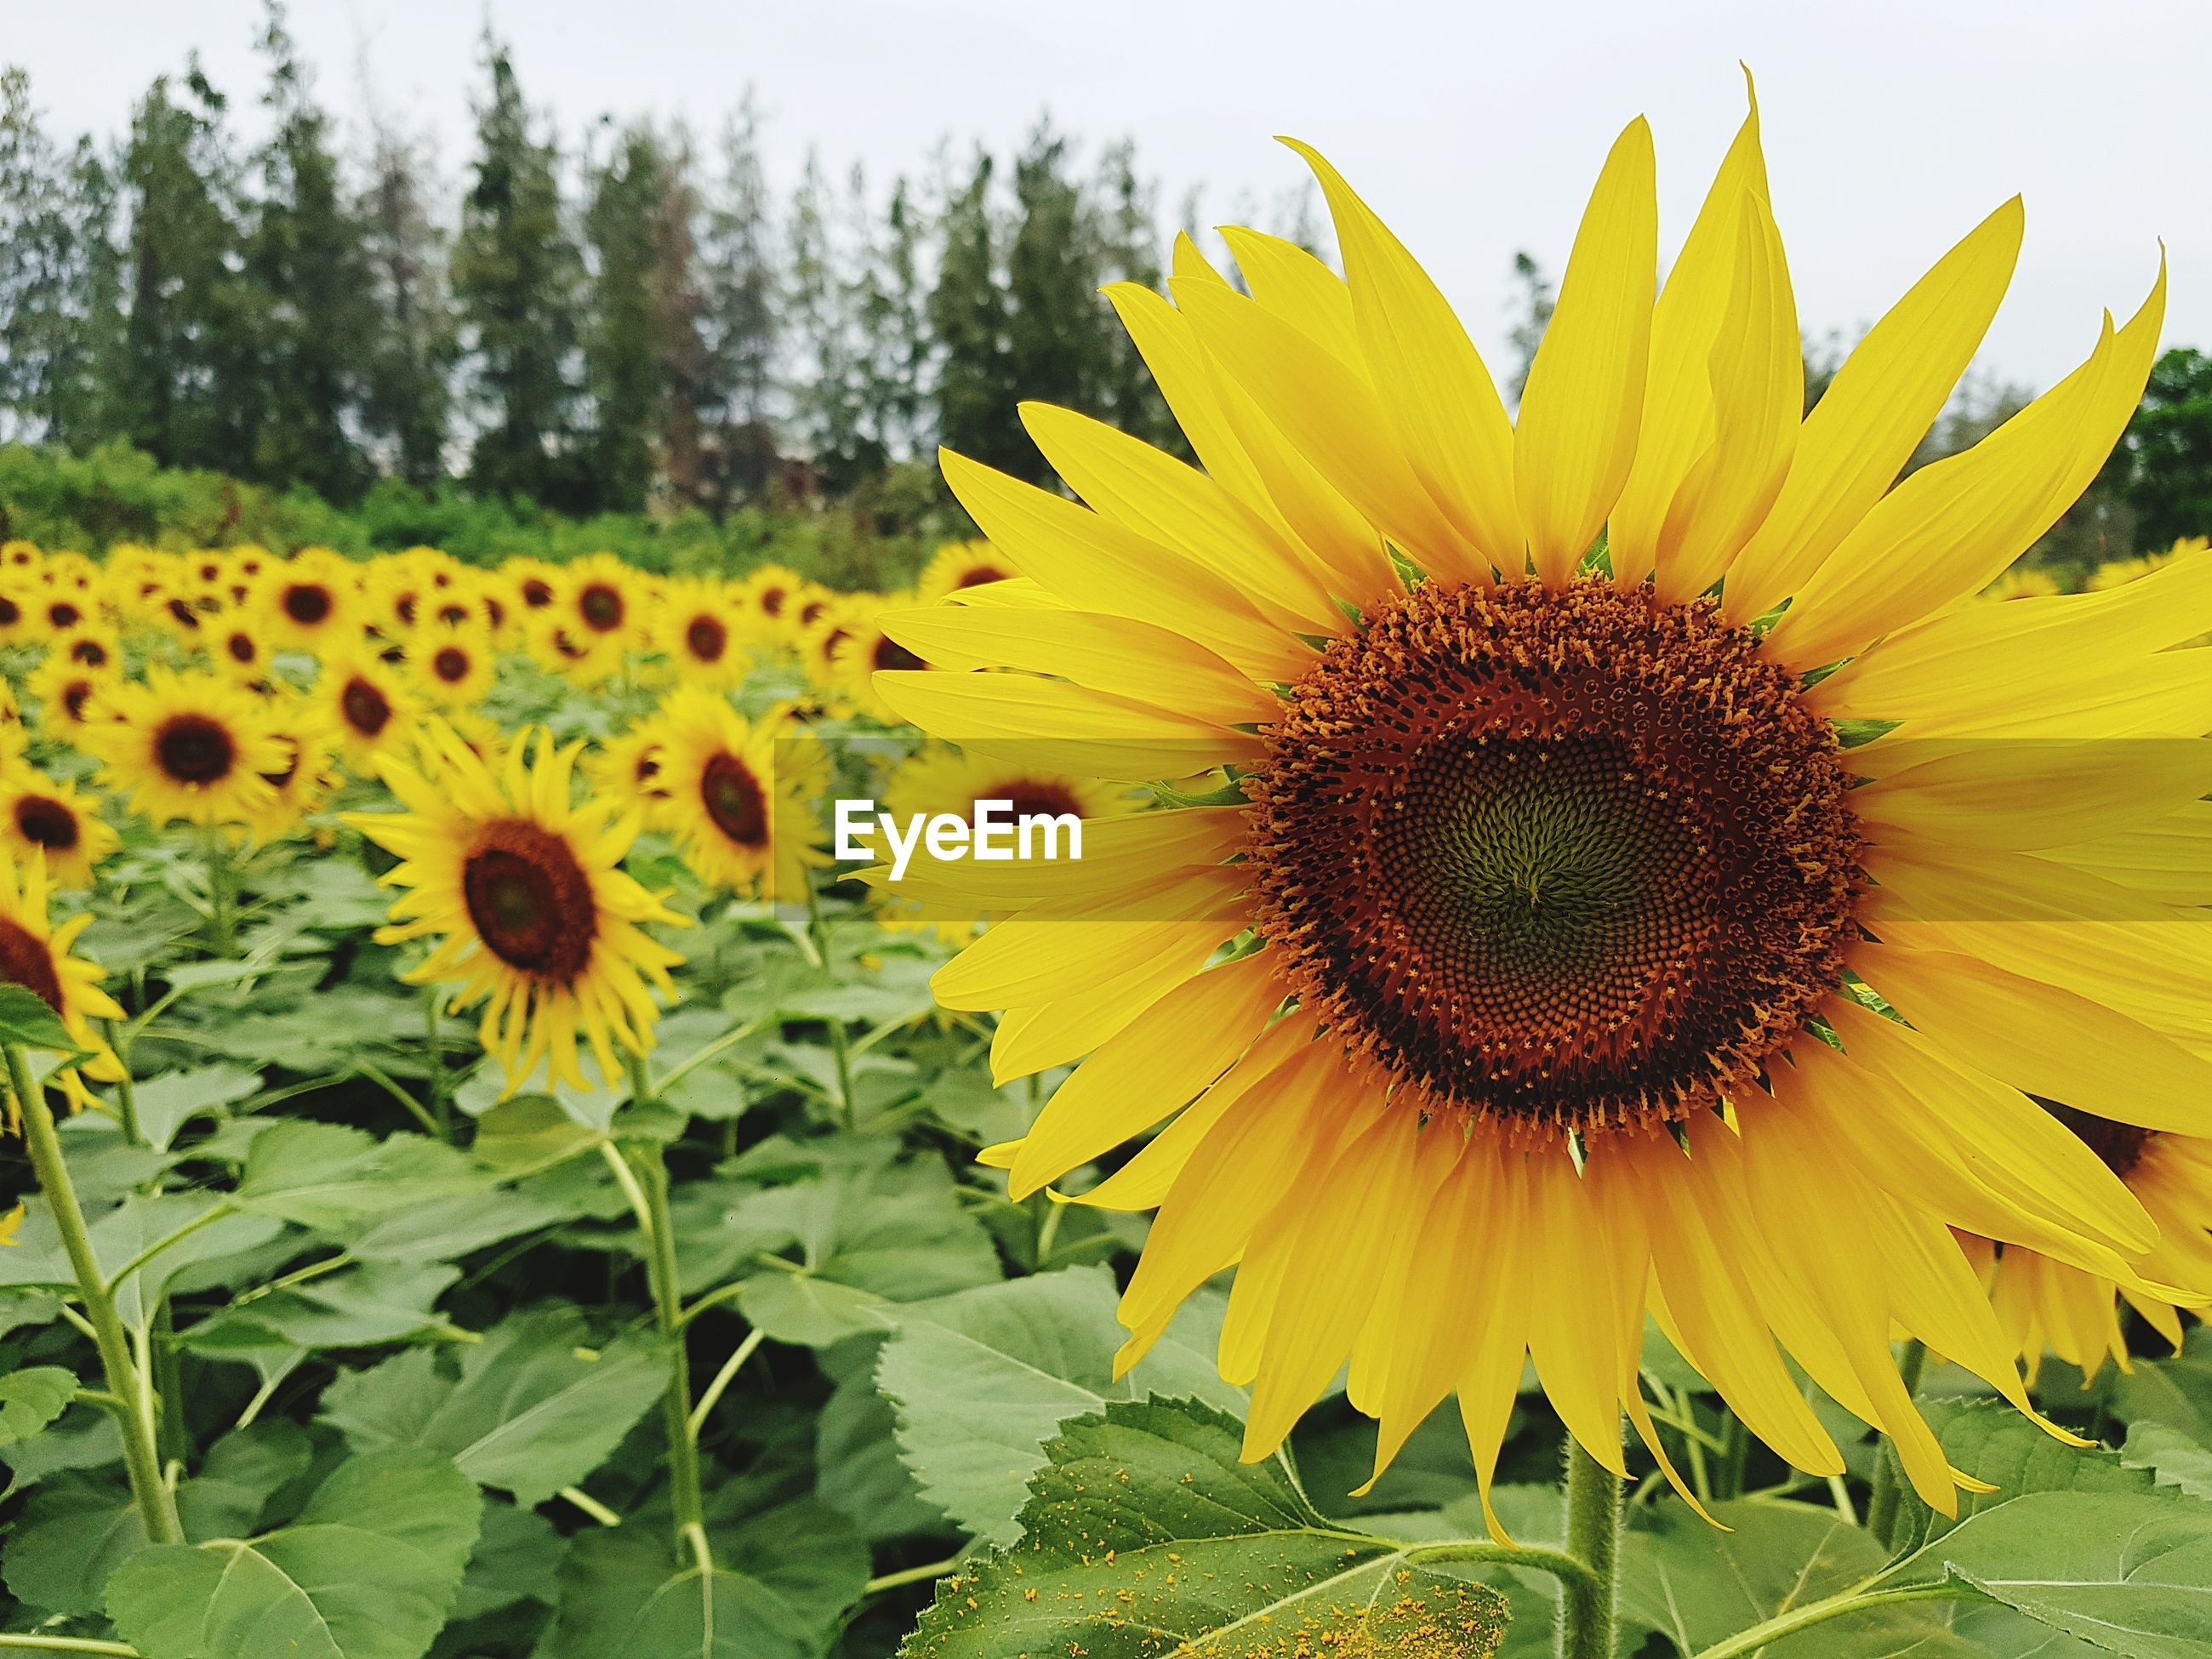 CLOSE-UP OF YELLOW SUNFLOWERS ON FLOWERING PLANT